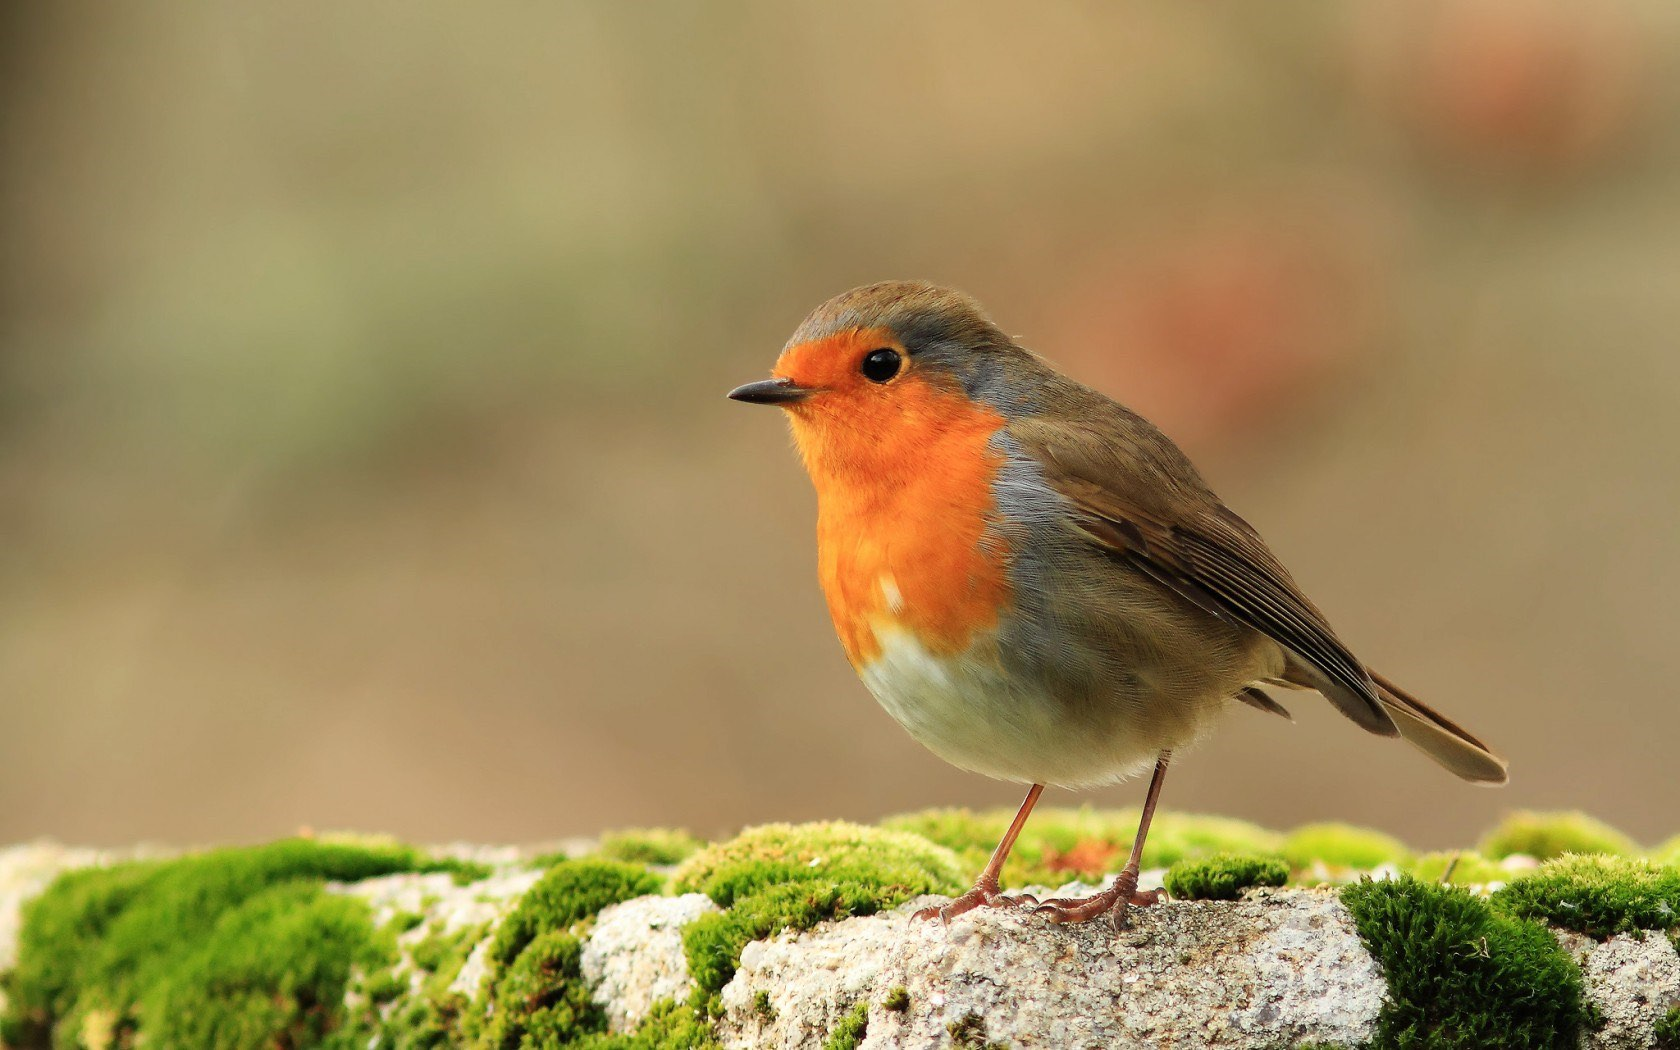 Robin, image from wallpaper-kid.com